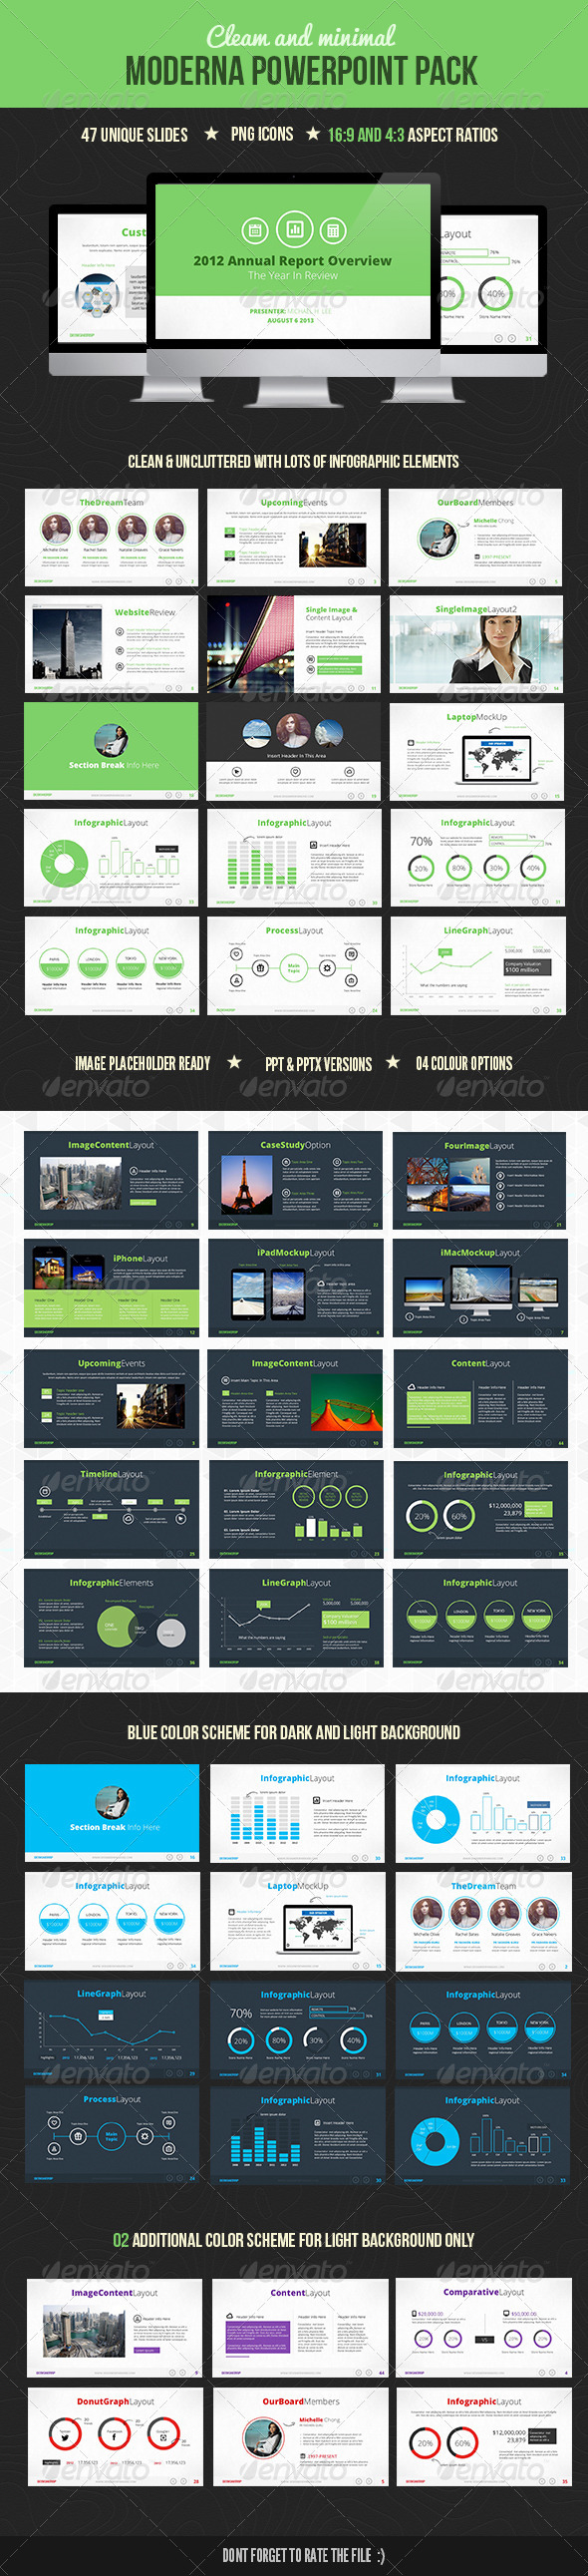 GraphicRiver Moderna Powerpoint 4596595